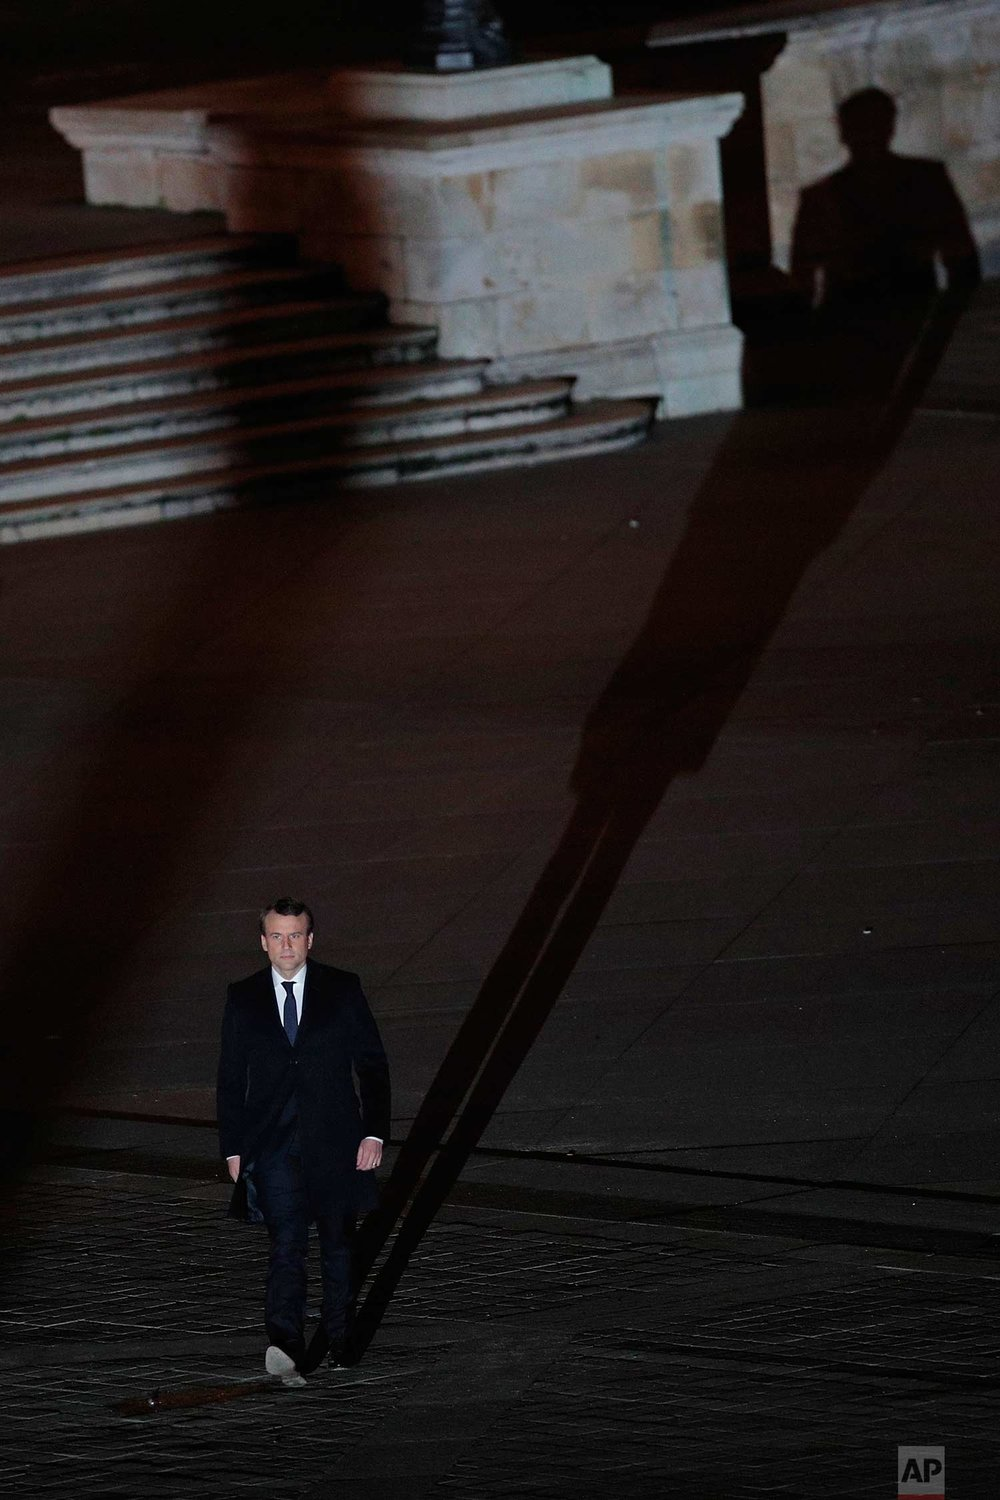 In this Sunday May 7, 2017 photo, incoming French President Emmanuel Macron walks towards the stage to address his supporters at the Louvre Palace in Paris. Polling agencies have projected that centrist Macron will be France's next president, putting a 39-year-old political novice at the helm of one of the world's biggest economies and slowing a global populist wave. (AP Photo/Christophe Ena)